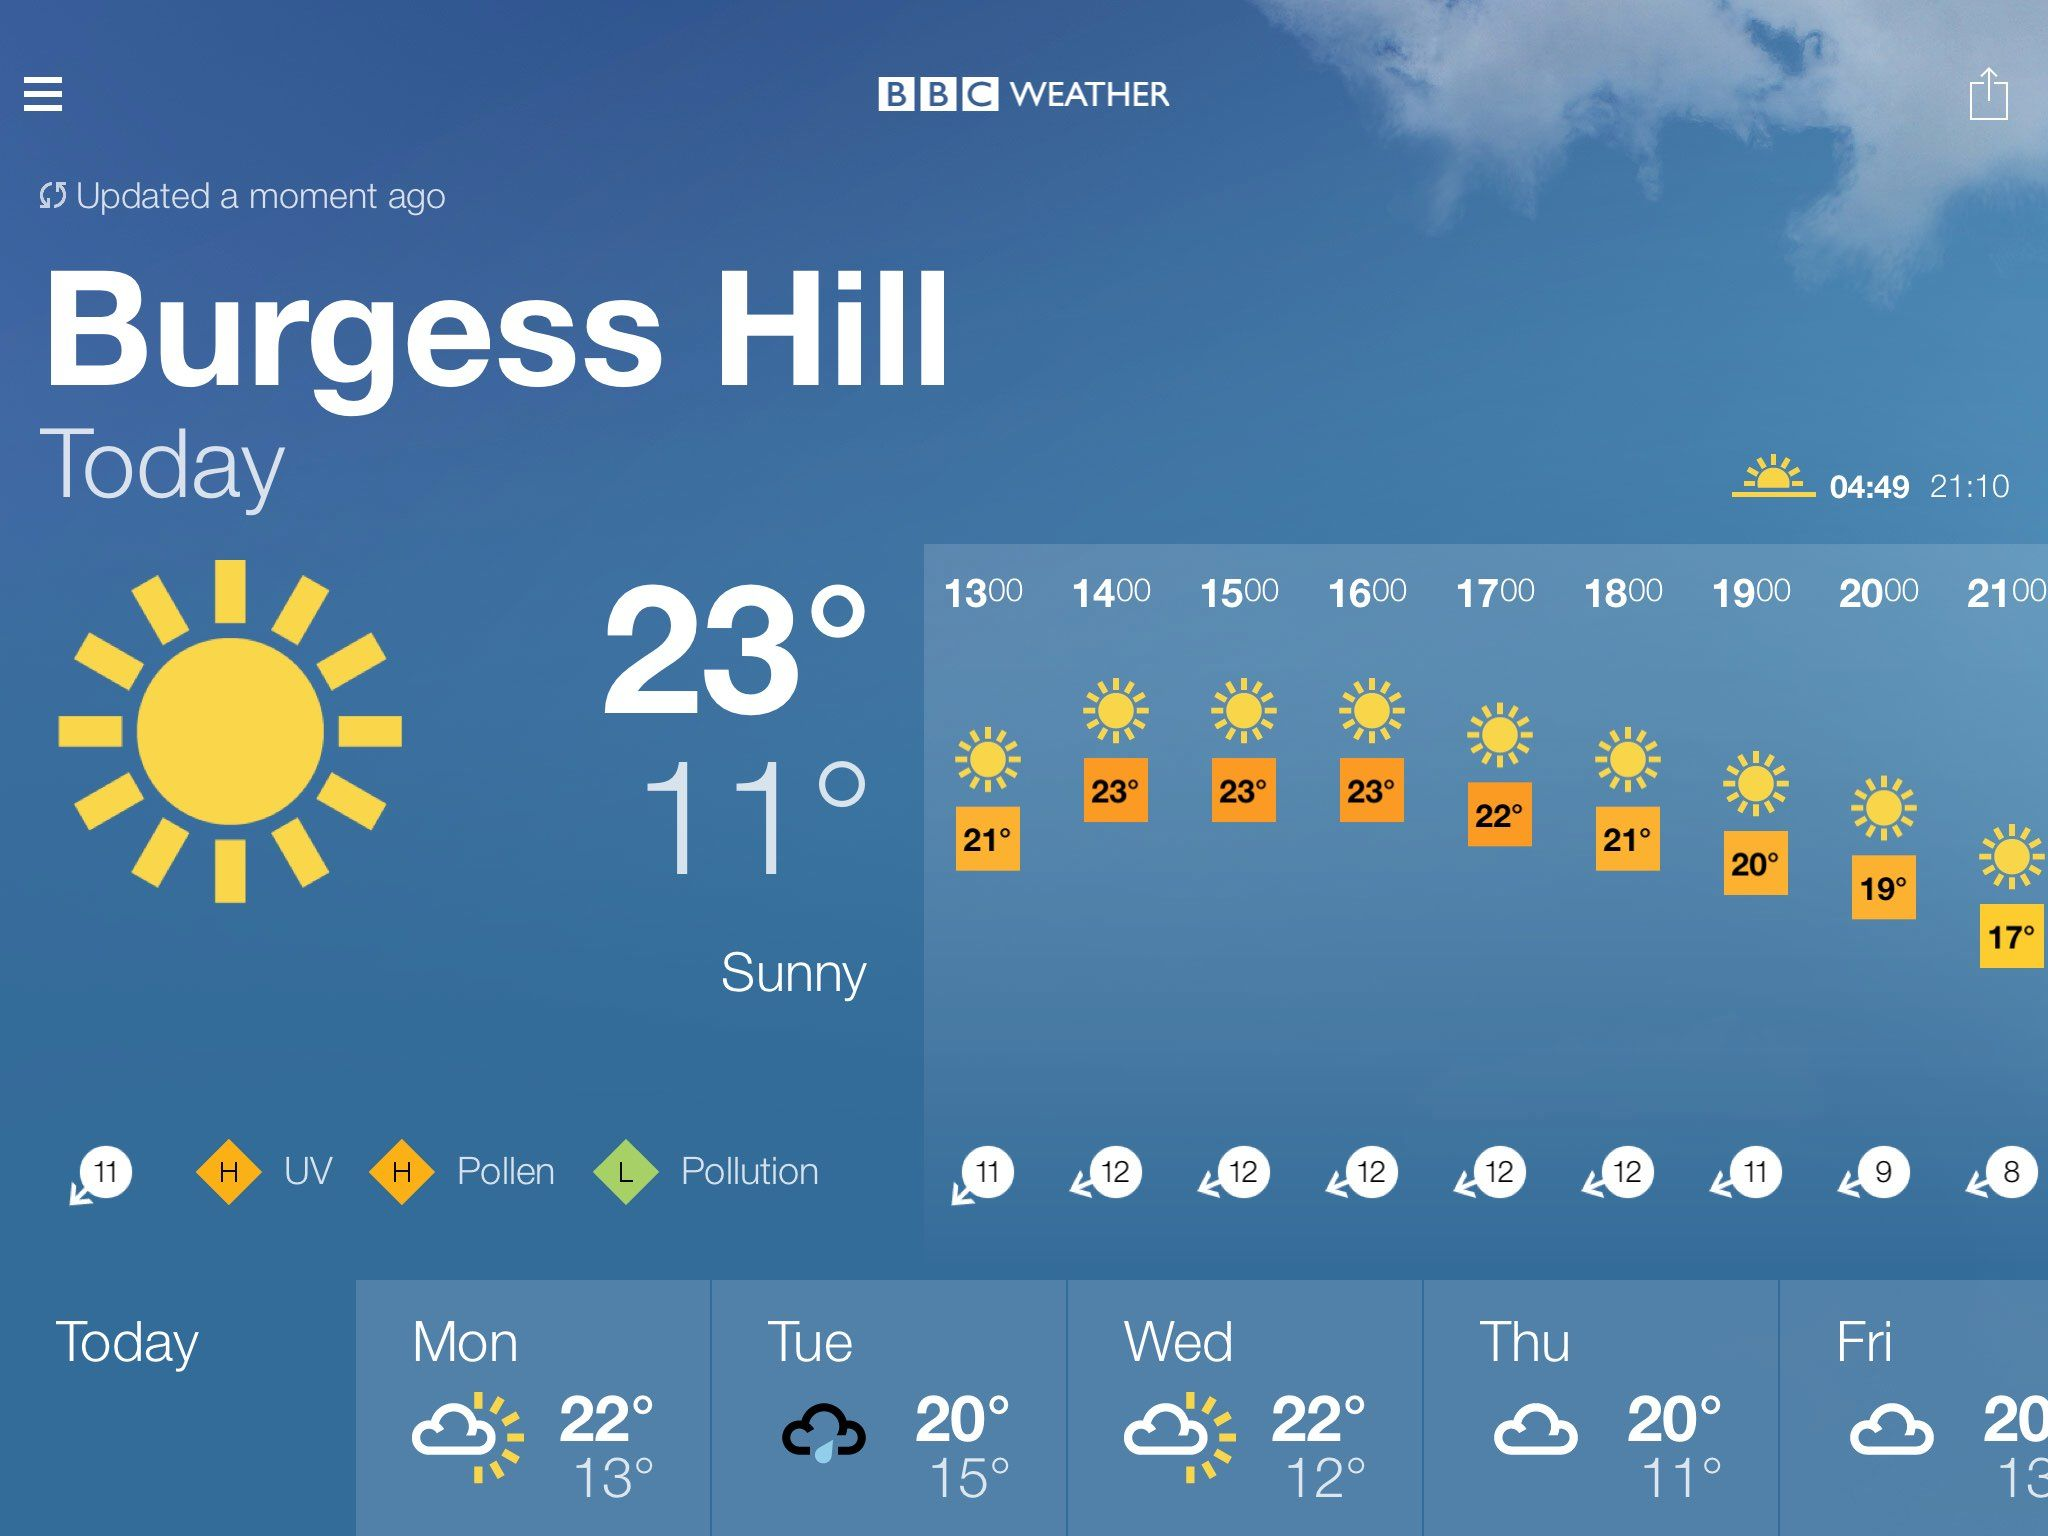 Bbc weather - Bbc Weather Forecast For Burgess Hill West Sussex Today Sunny Max 23